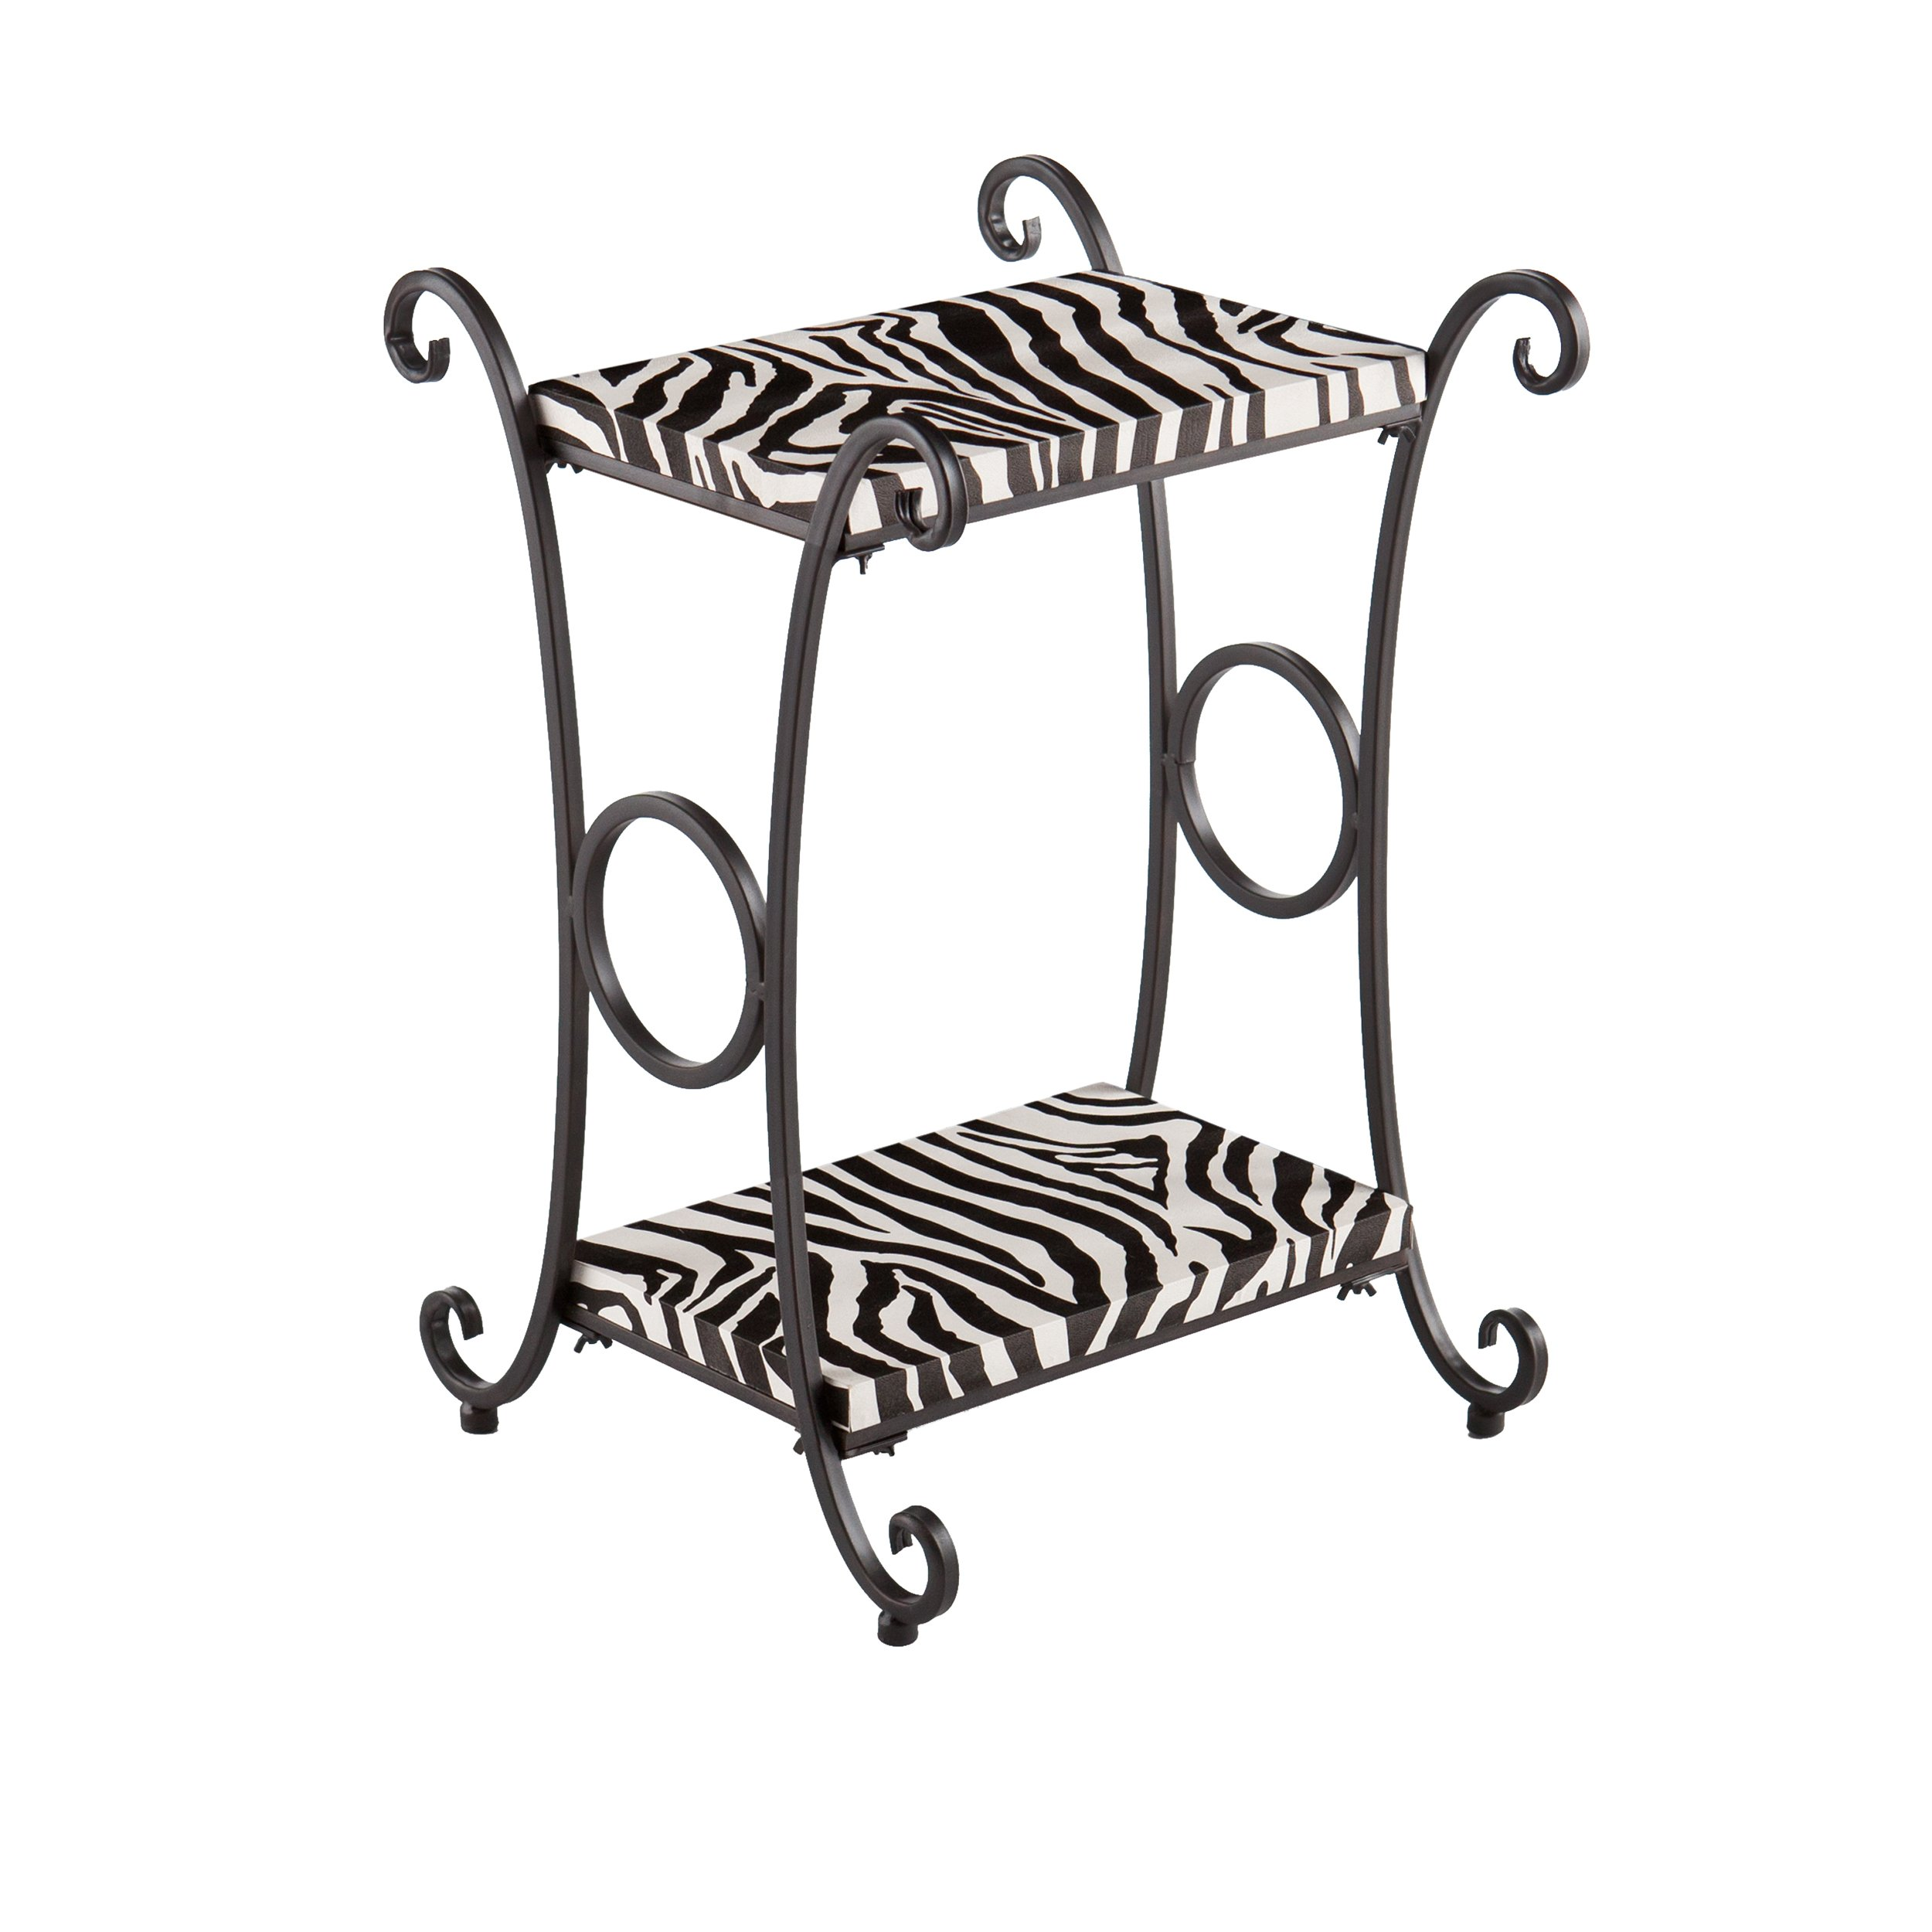 harper blvd castell zebra animal print accent side table upton home multi free shipping today small black lamp faux marble end nate berkus vitra style chair trestle bench rustic